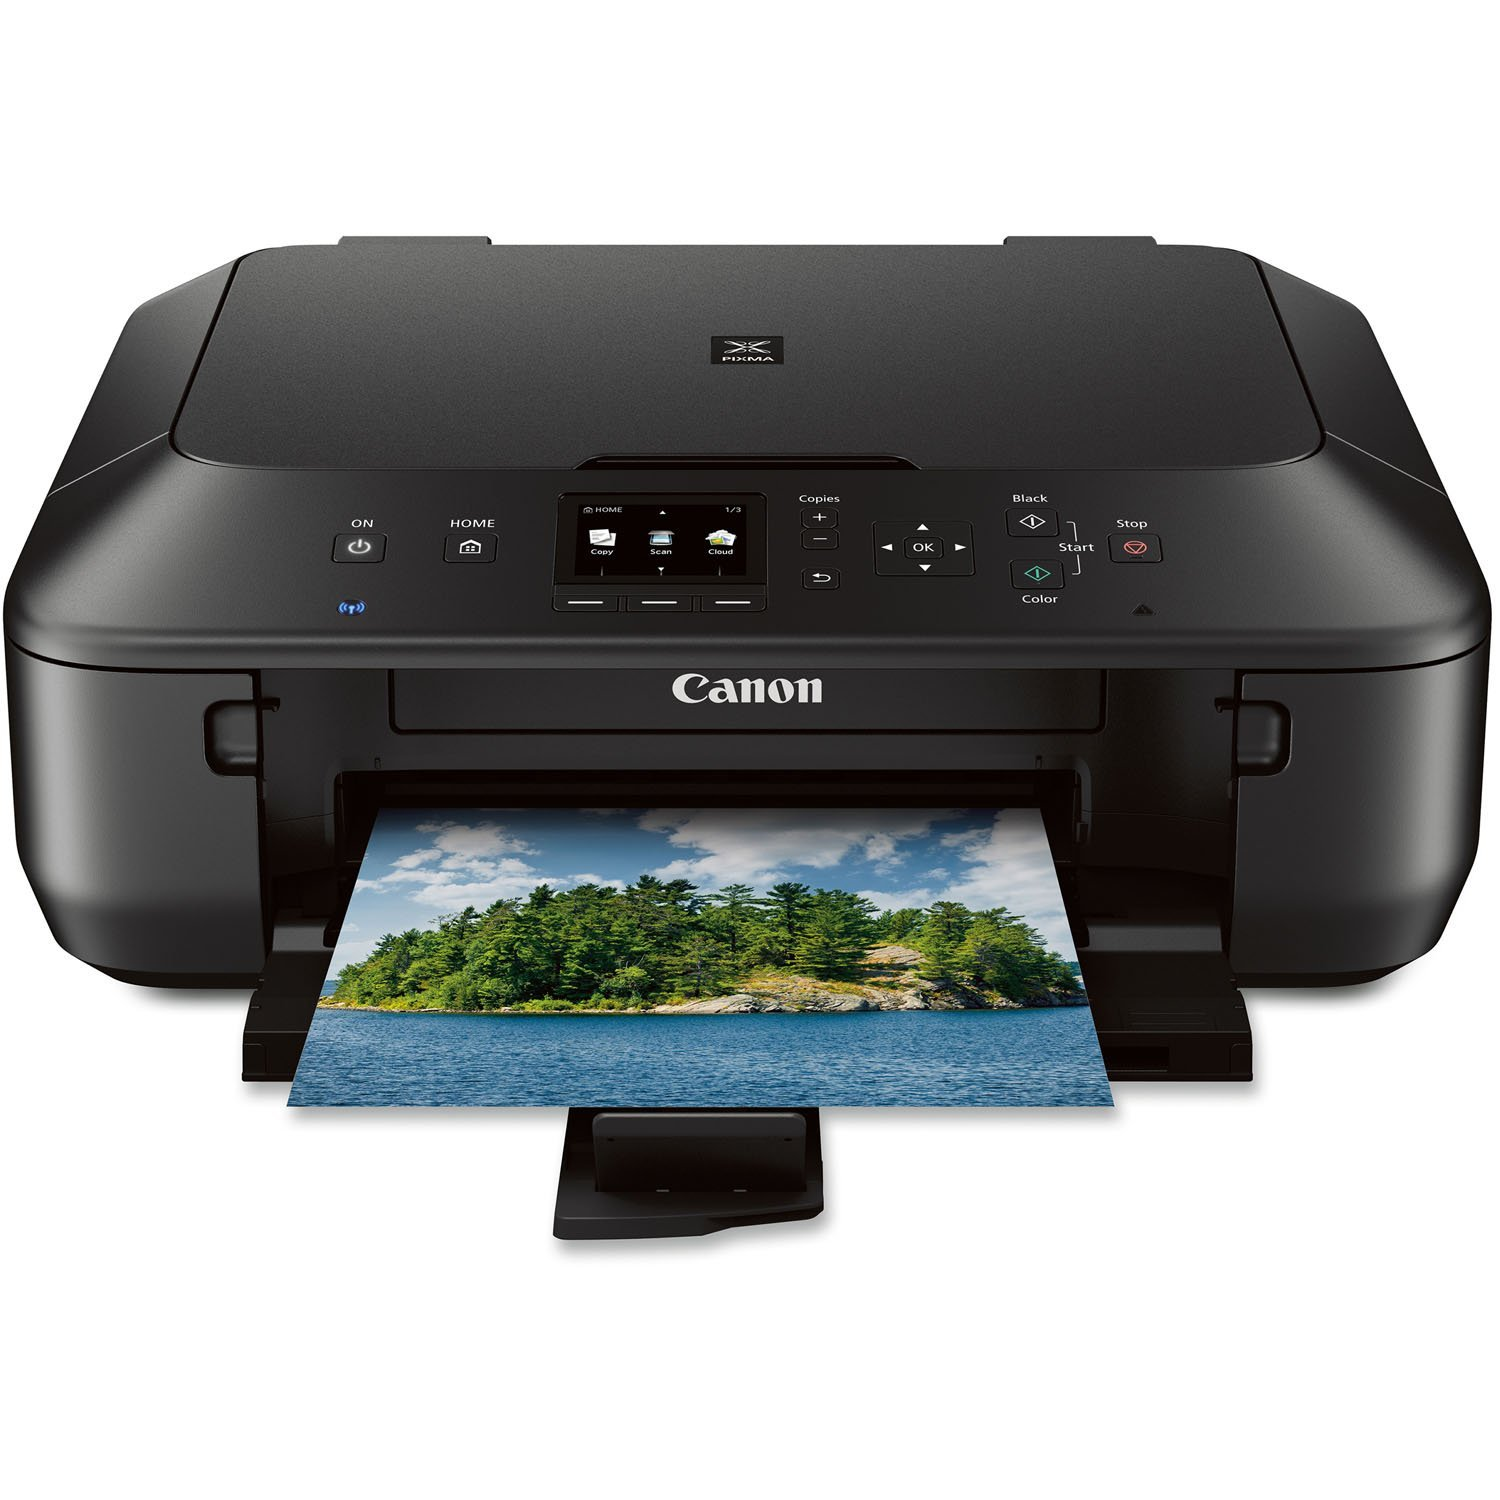 canon pixma mg5520 wireless all in one color photo printer with